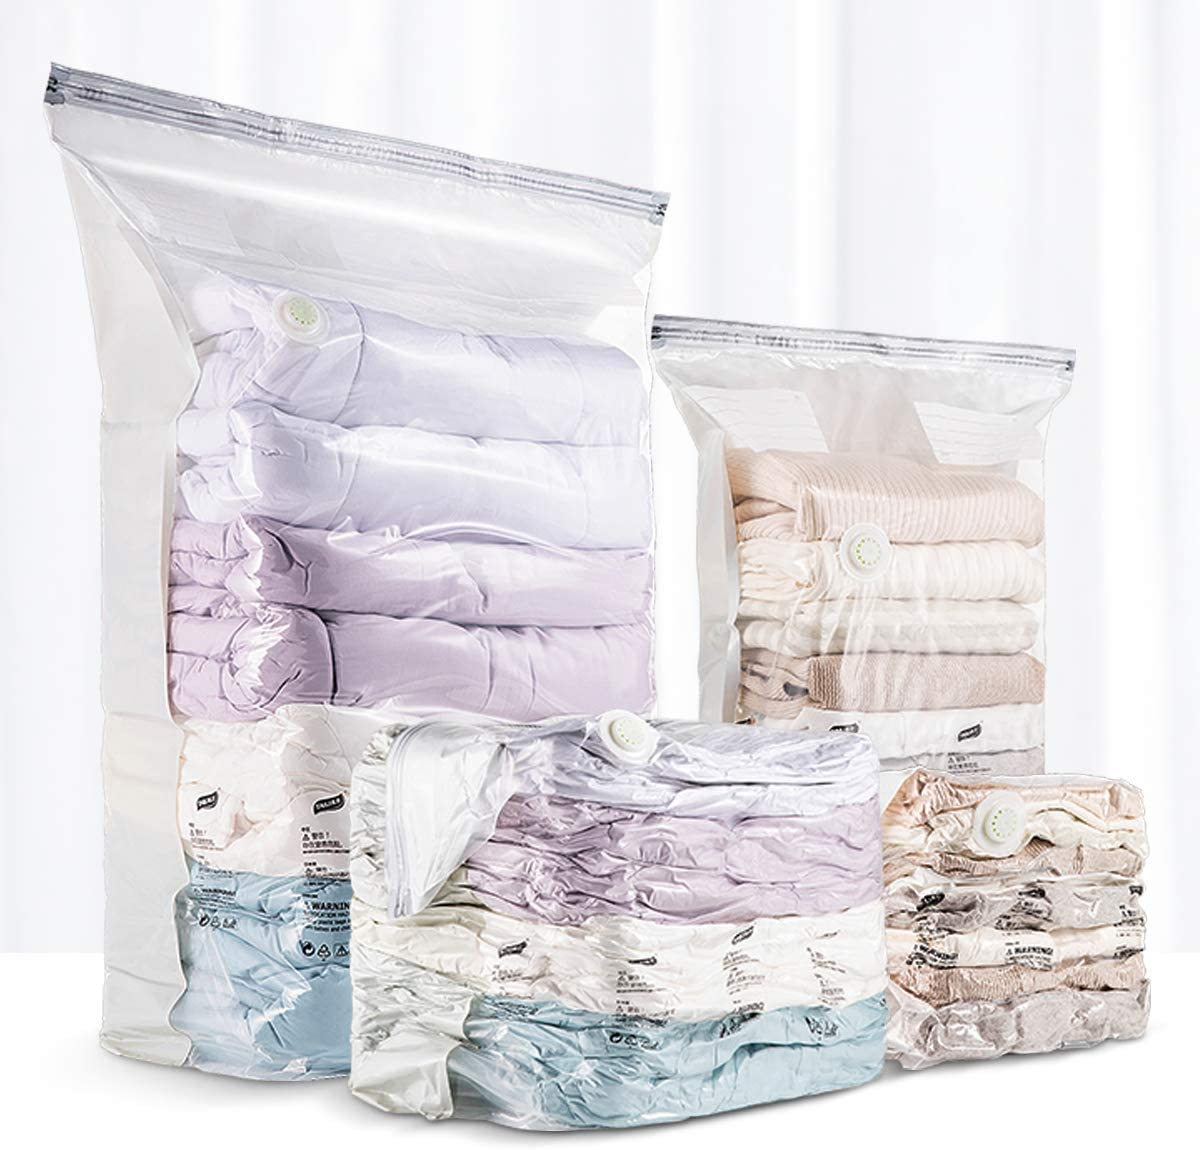 VELMADE Cube Space Saver Bags 6-Pack Vacuum Storage Bags for Bedding, Blanket, Comforter, Pillows,Vacuum Cleaner Universal Or No Pump Exhaust(3 Jumbo Cube & 3 Large Cube)